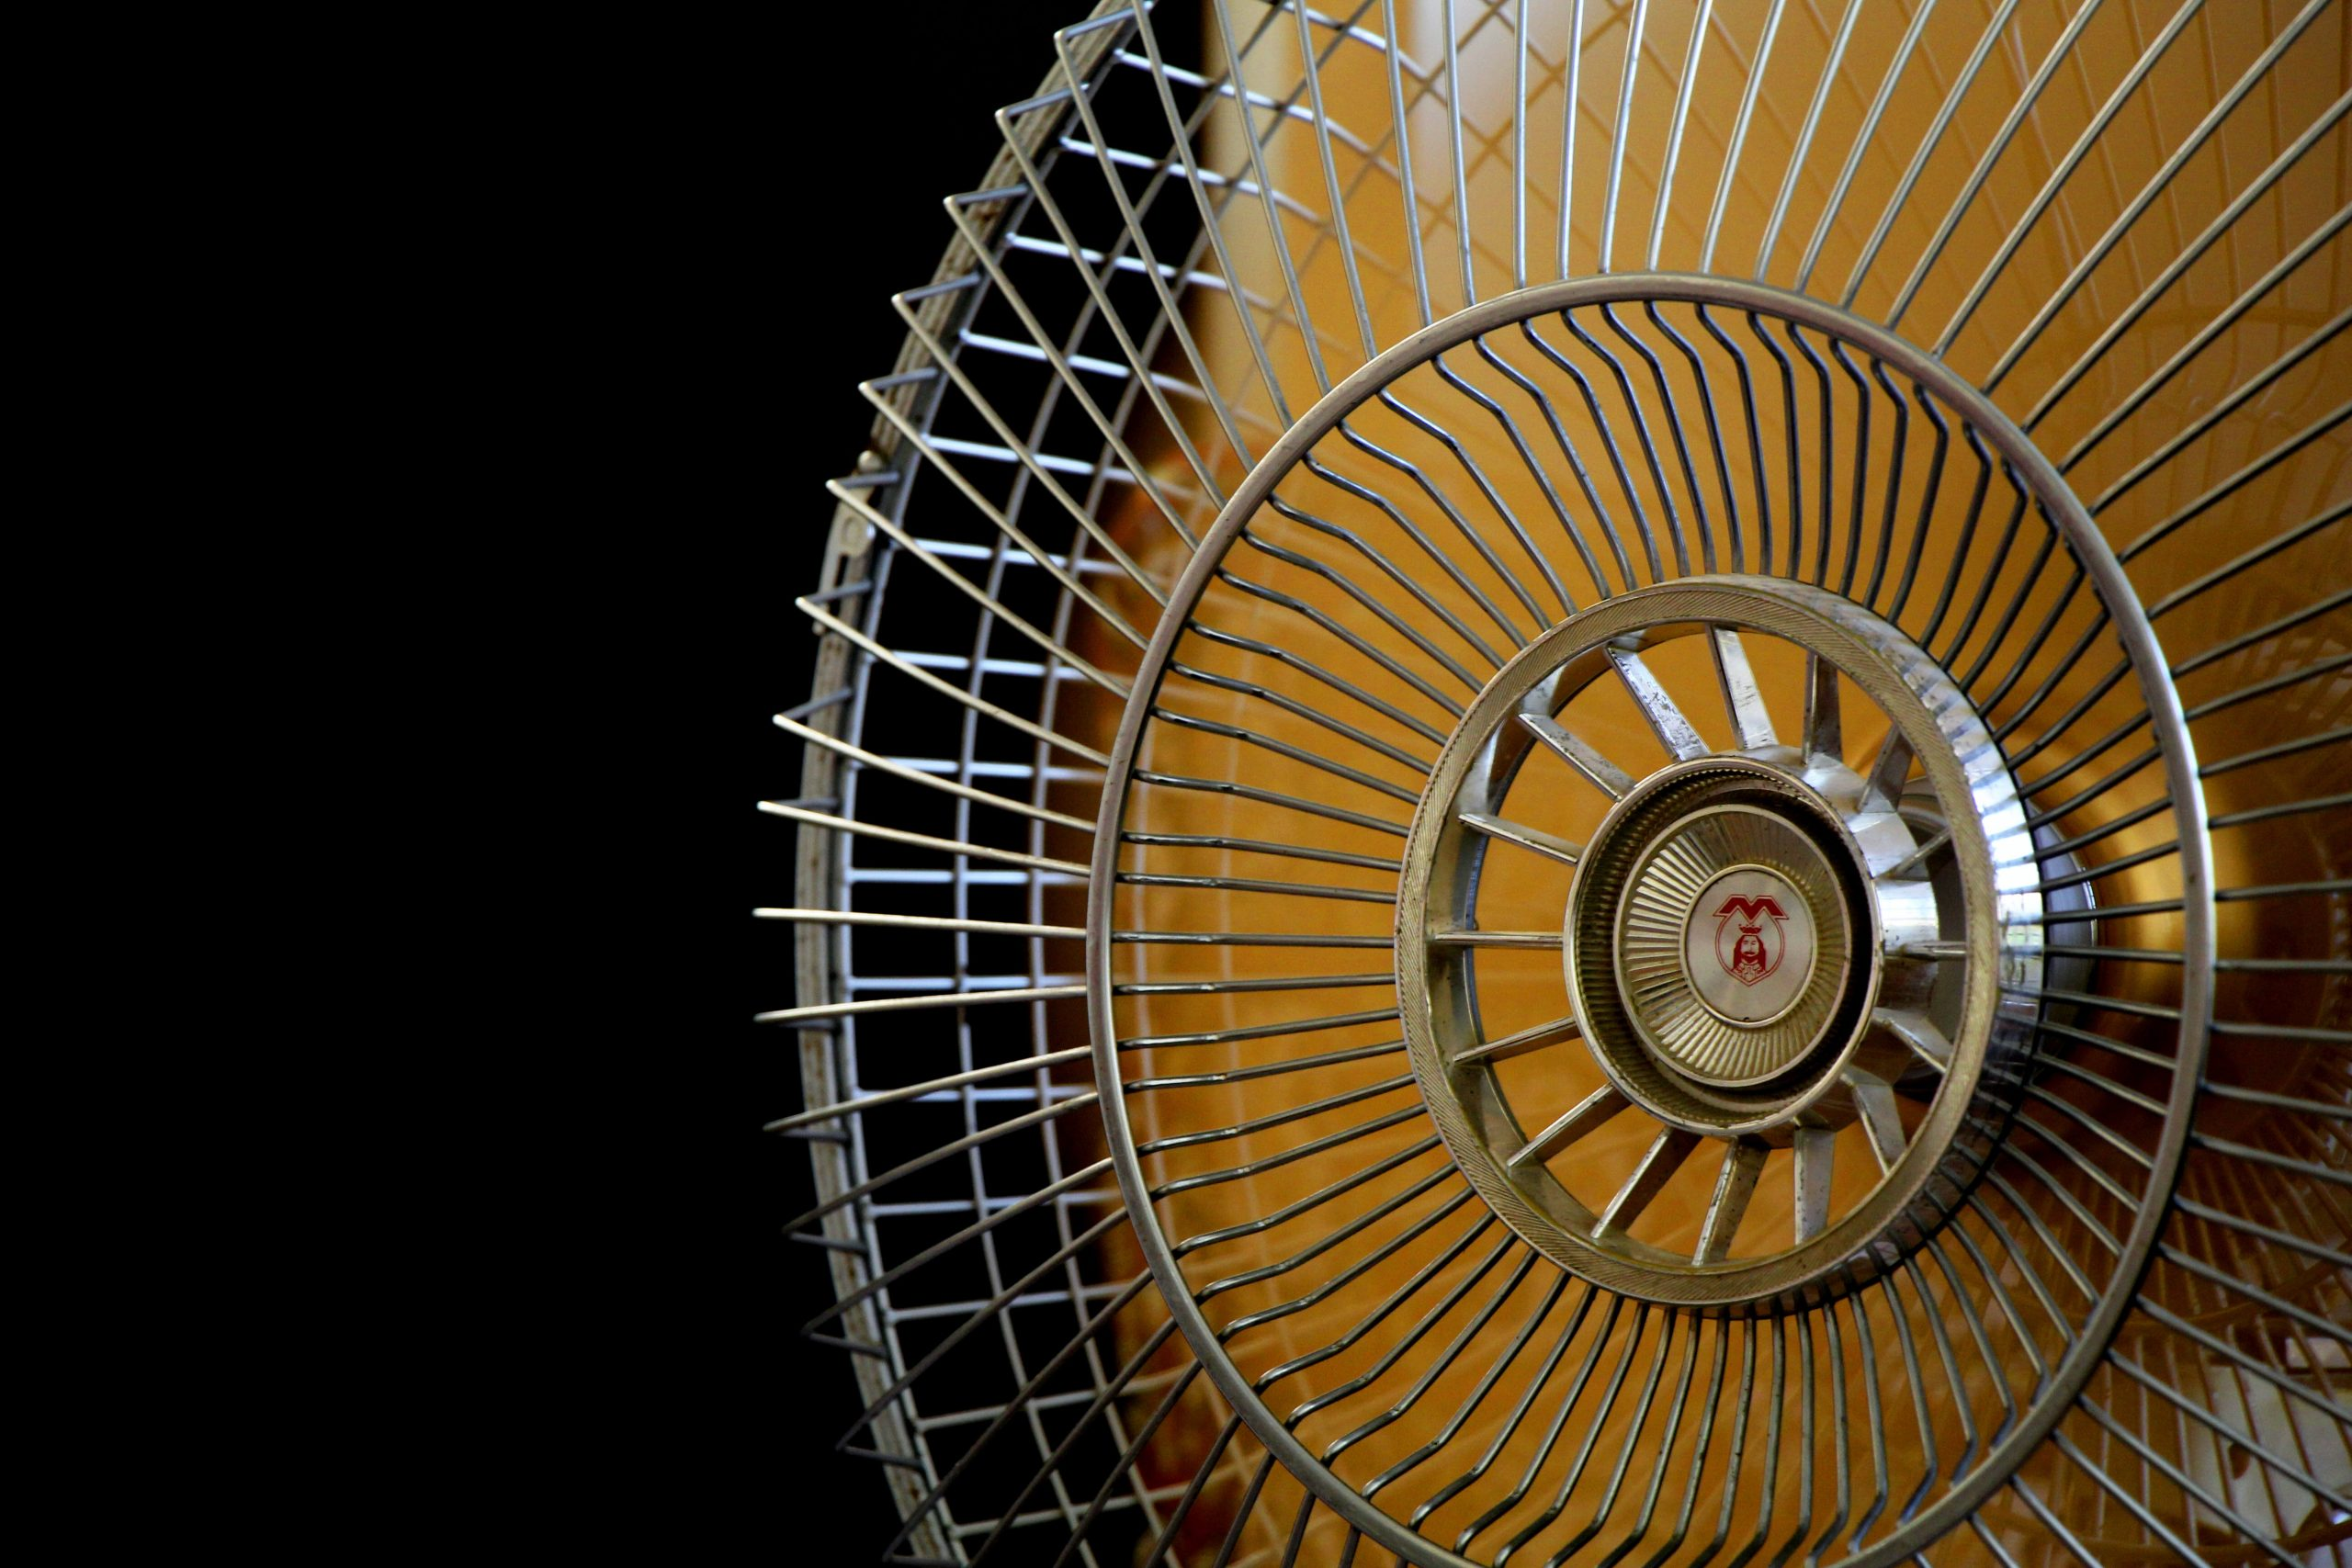 need your air conditioner fixed? Tedious Repairs can help!